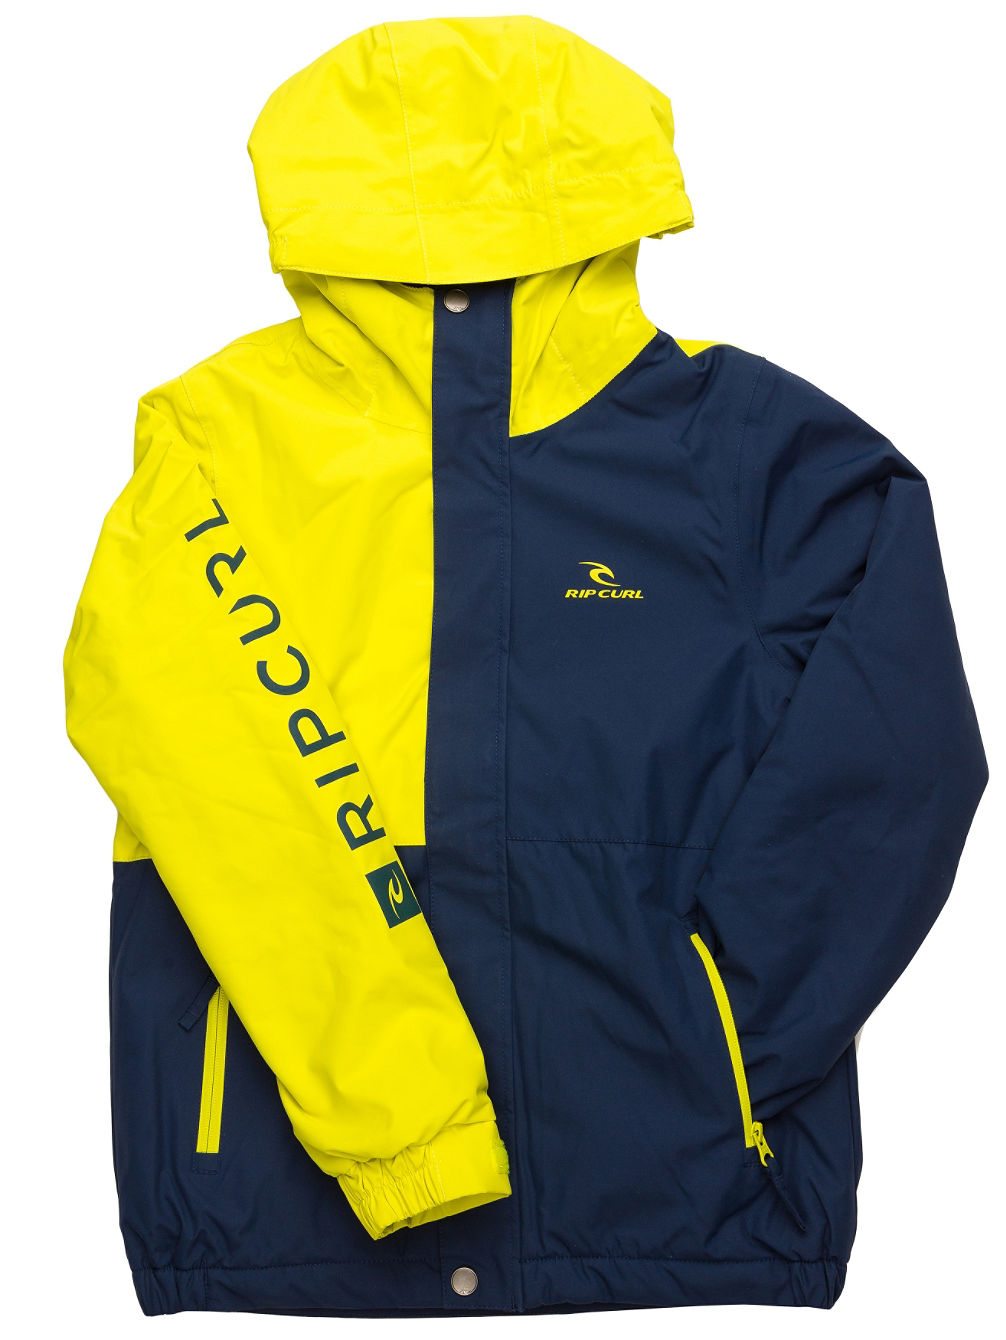 Buy Rip Curl Enigma Jacket Boys online at blue-tomato.com